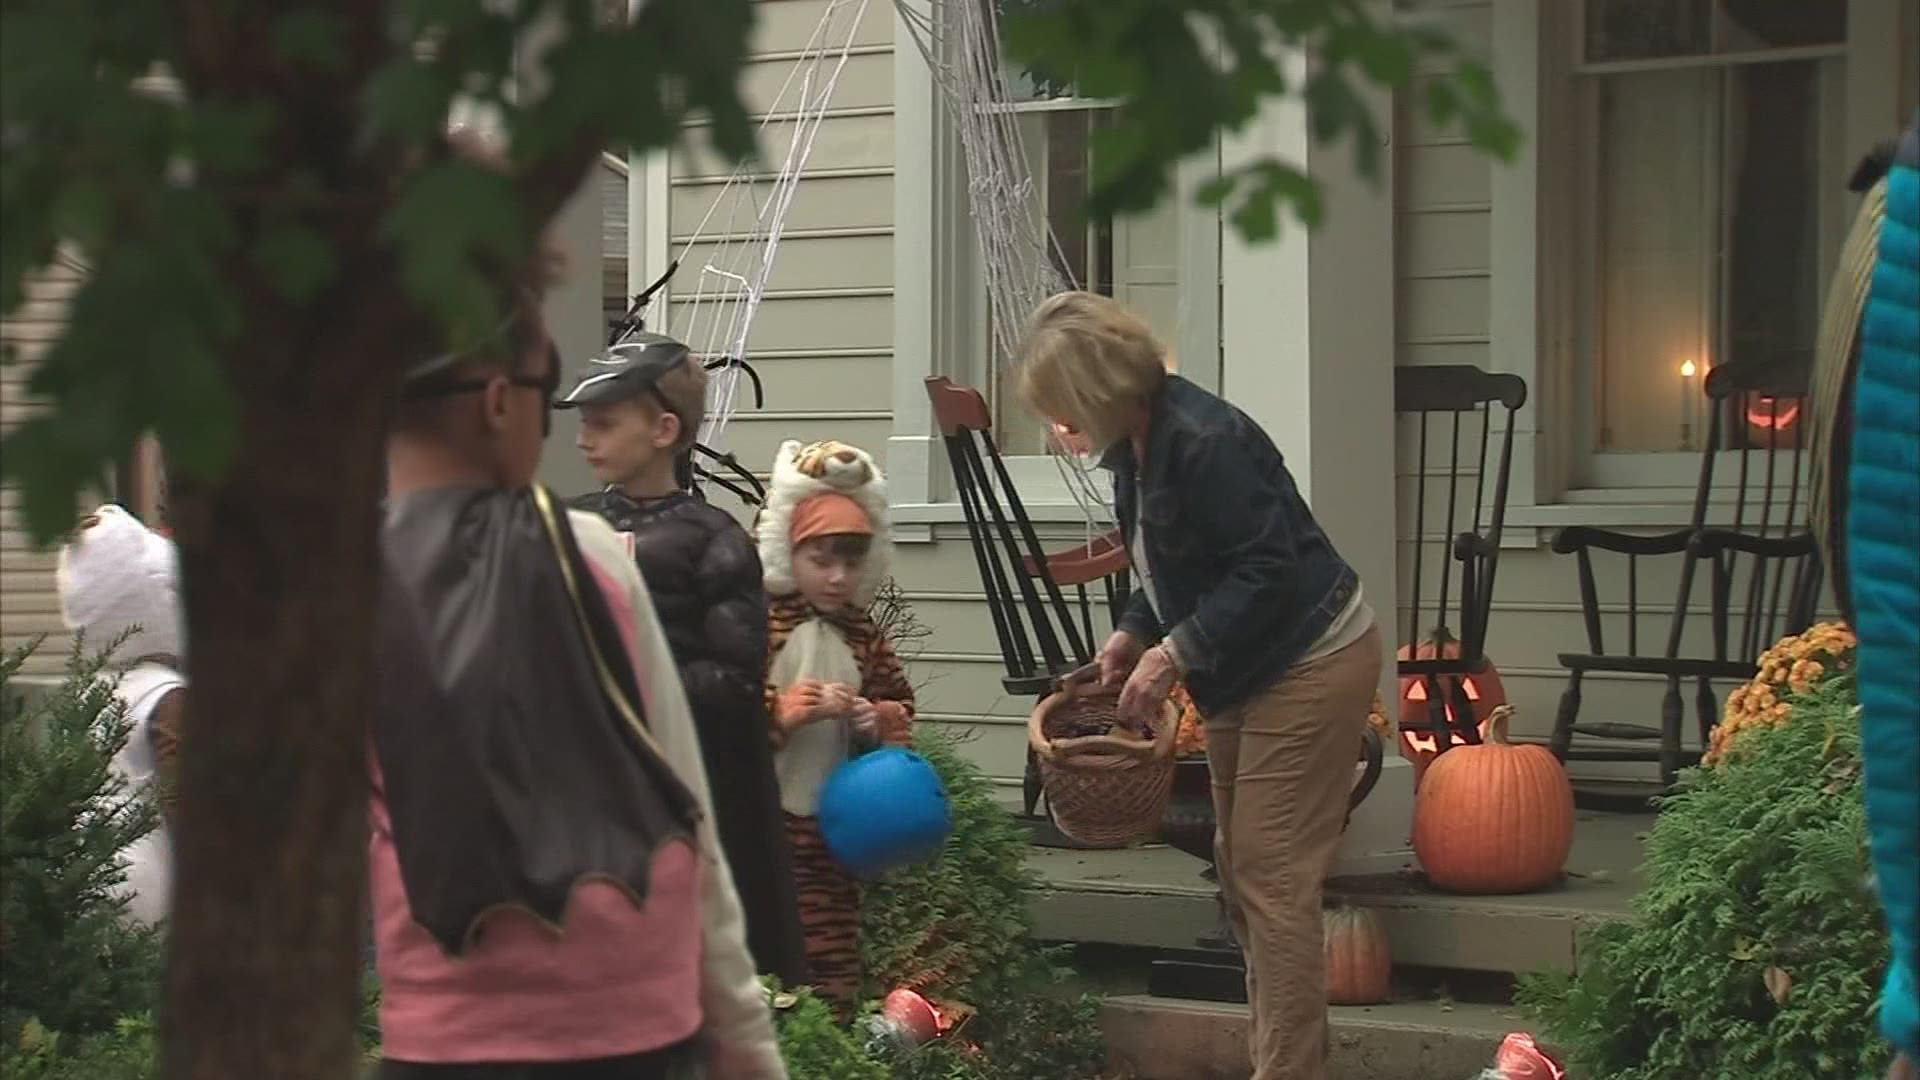 Cdc Shares Covid 19 Guidance For Halloween Thanksgiving And More 10tv Com